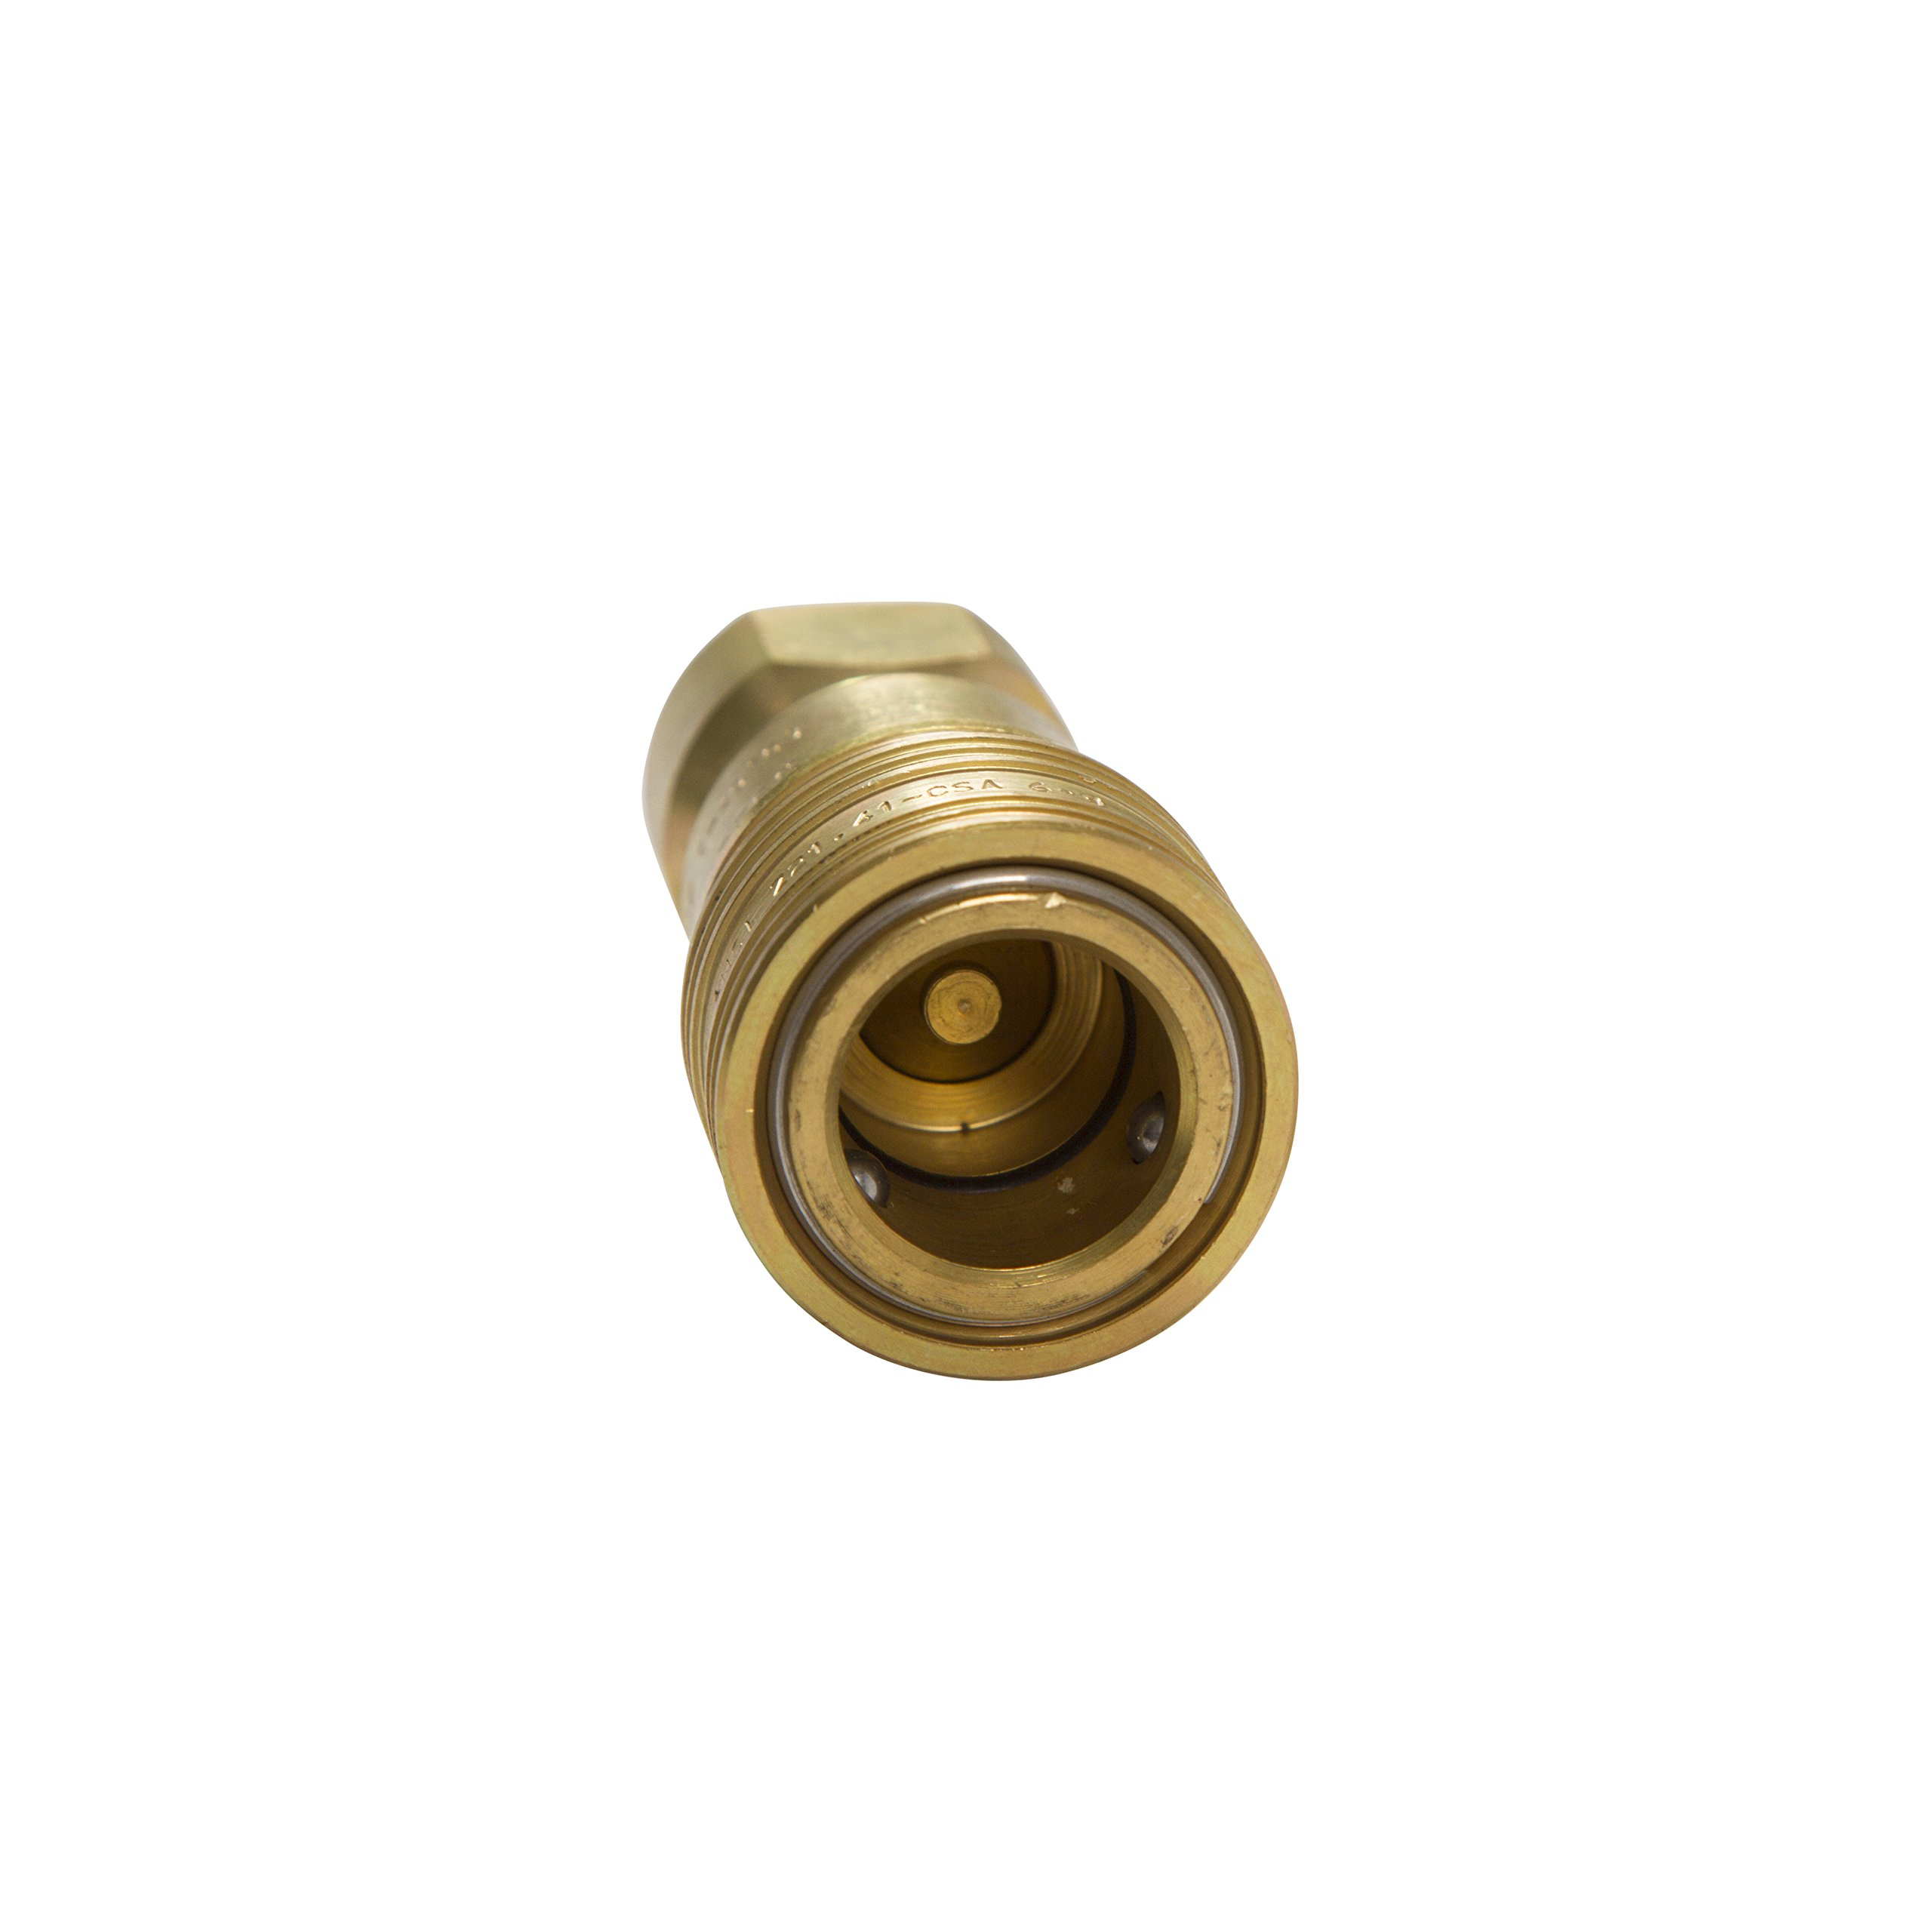 """1/2"""" Gas Fire Pit/ Heater BRASS HEAVY DUTY QUICK CONNECT/ DISCONNECT SUPPLY SIDE FOR PROPANE / NATURAL GAS (1/2"""" Quick Connect Female Supply Side)"""